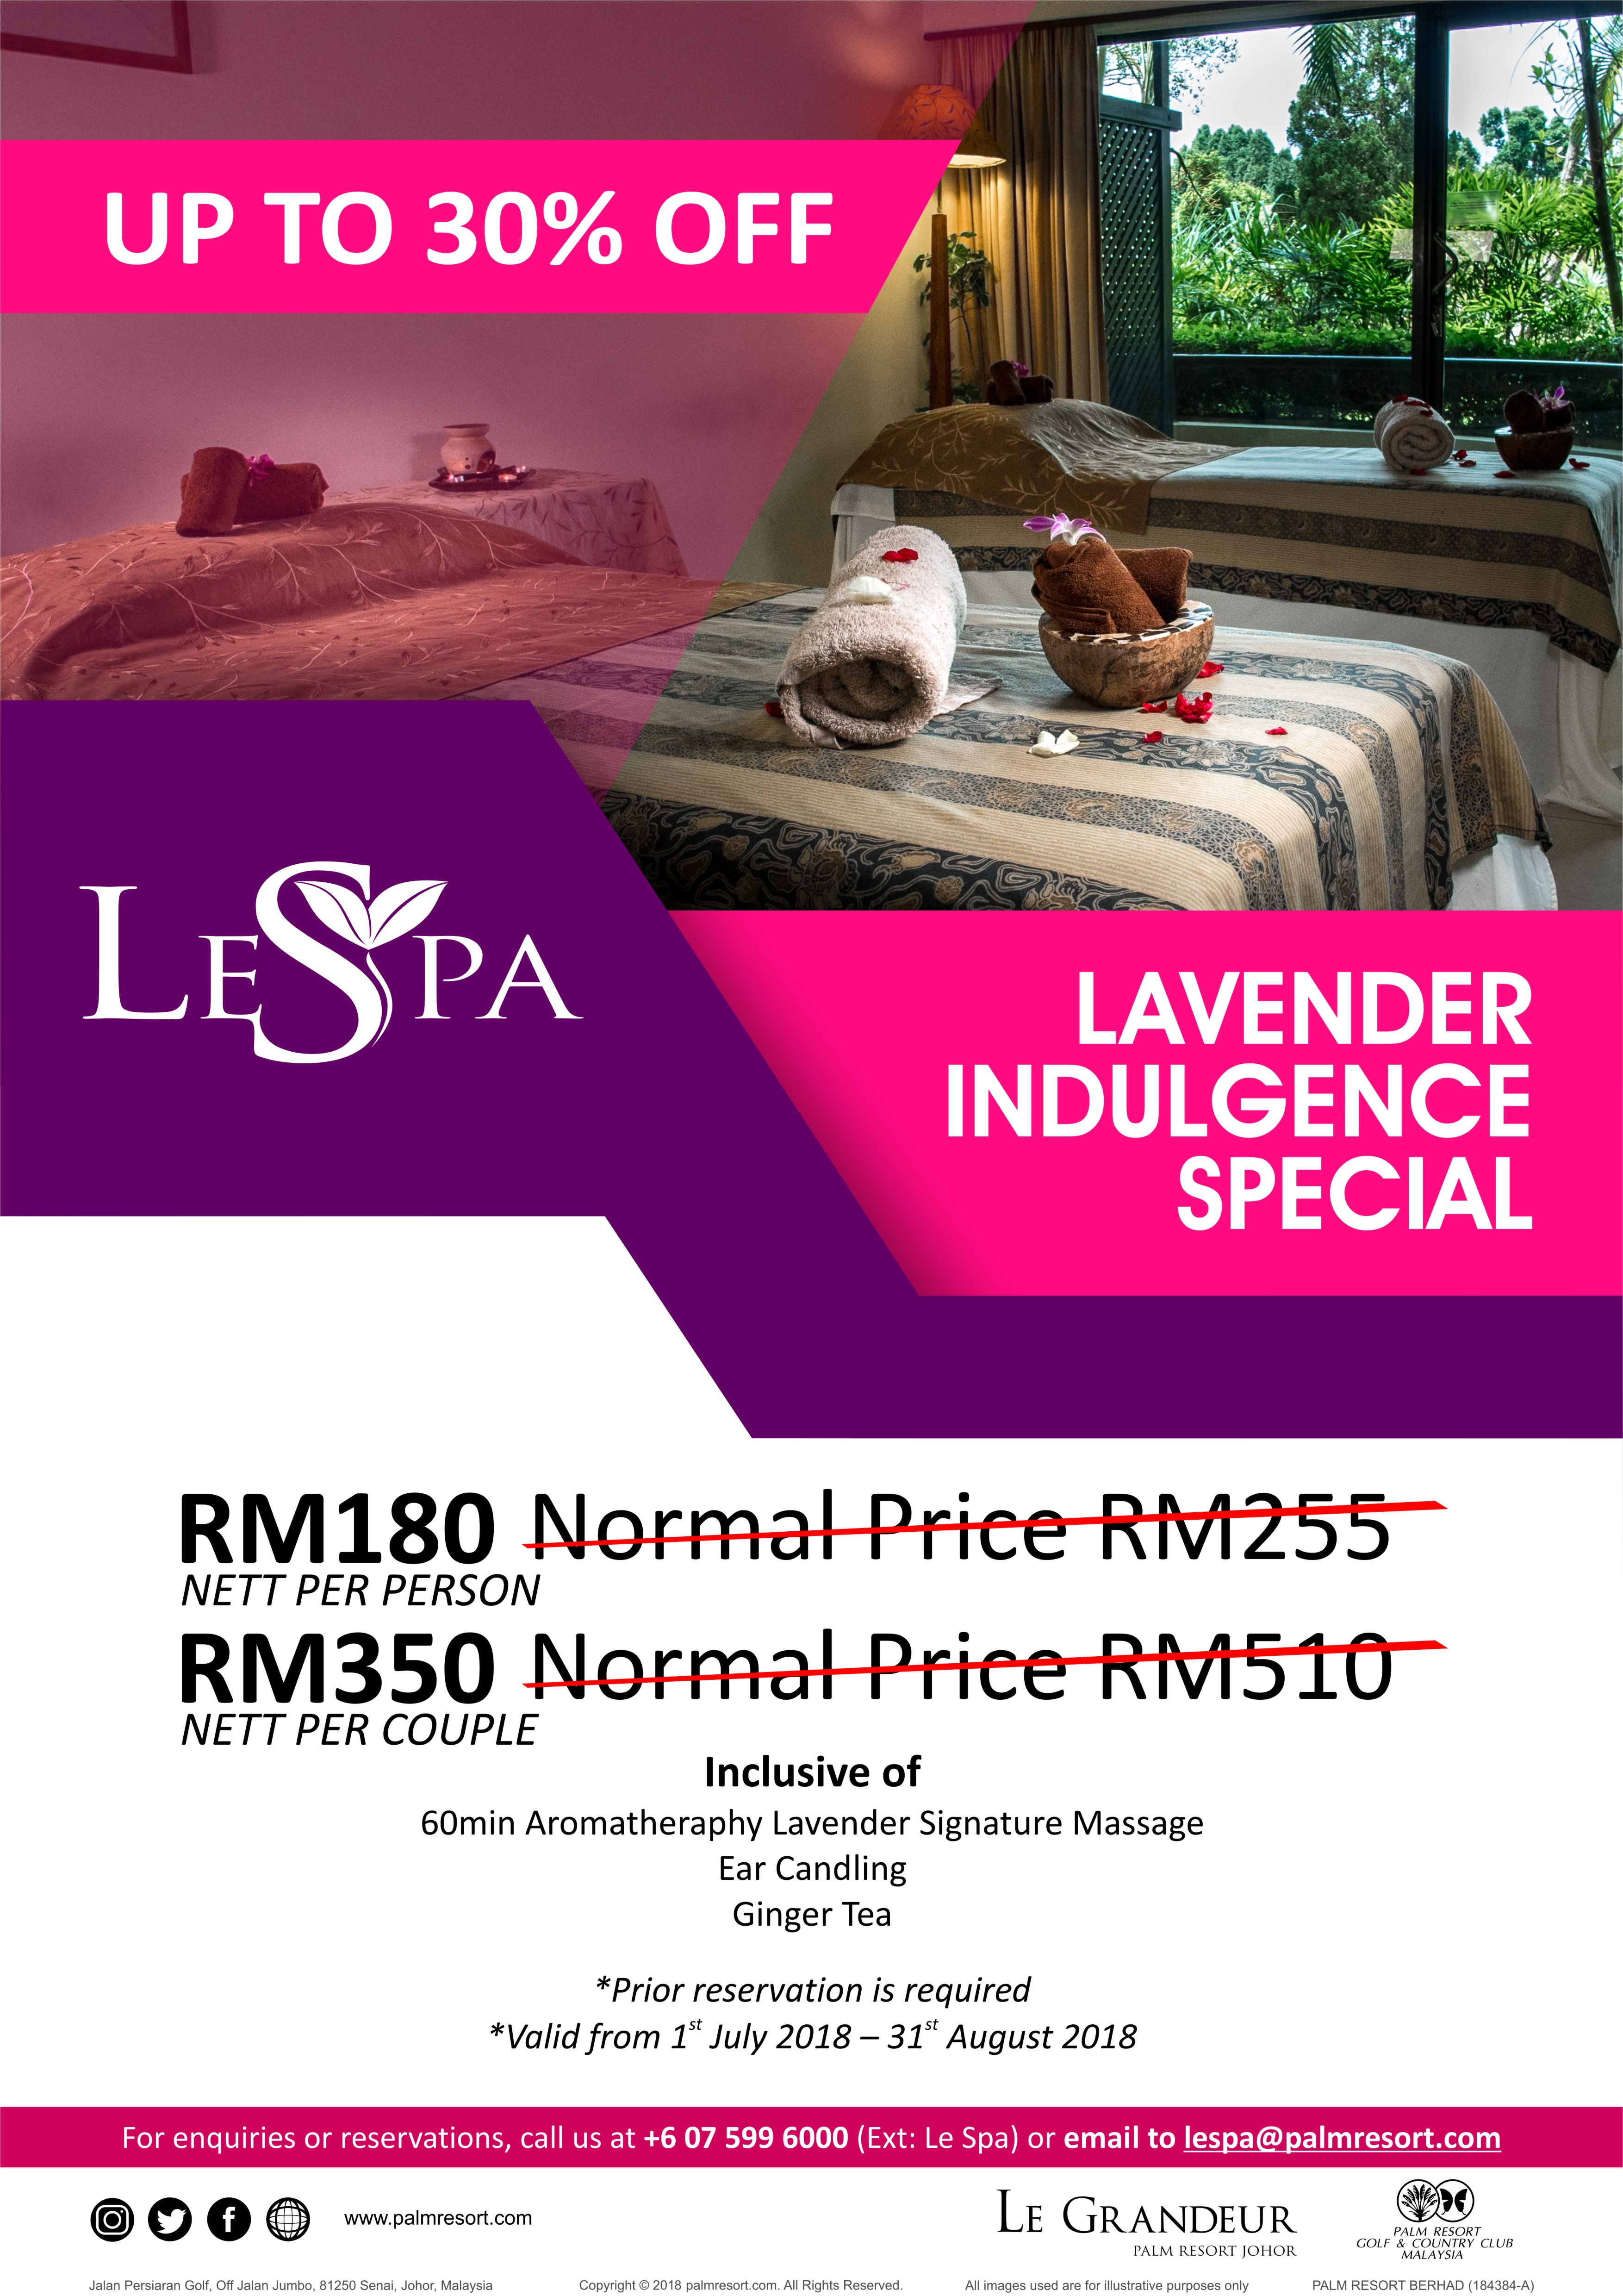 Lavender Indulgence Special